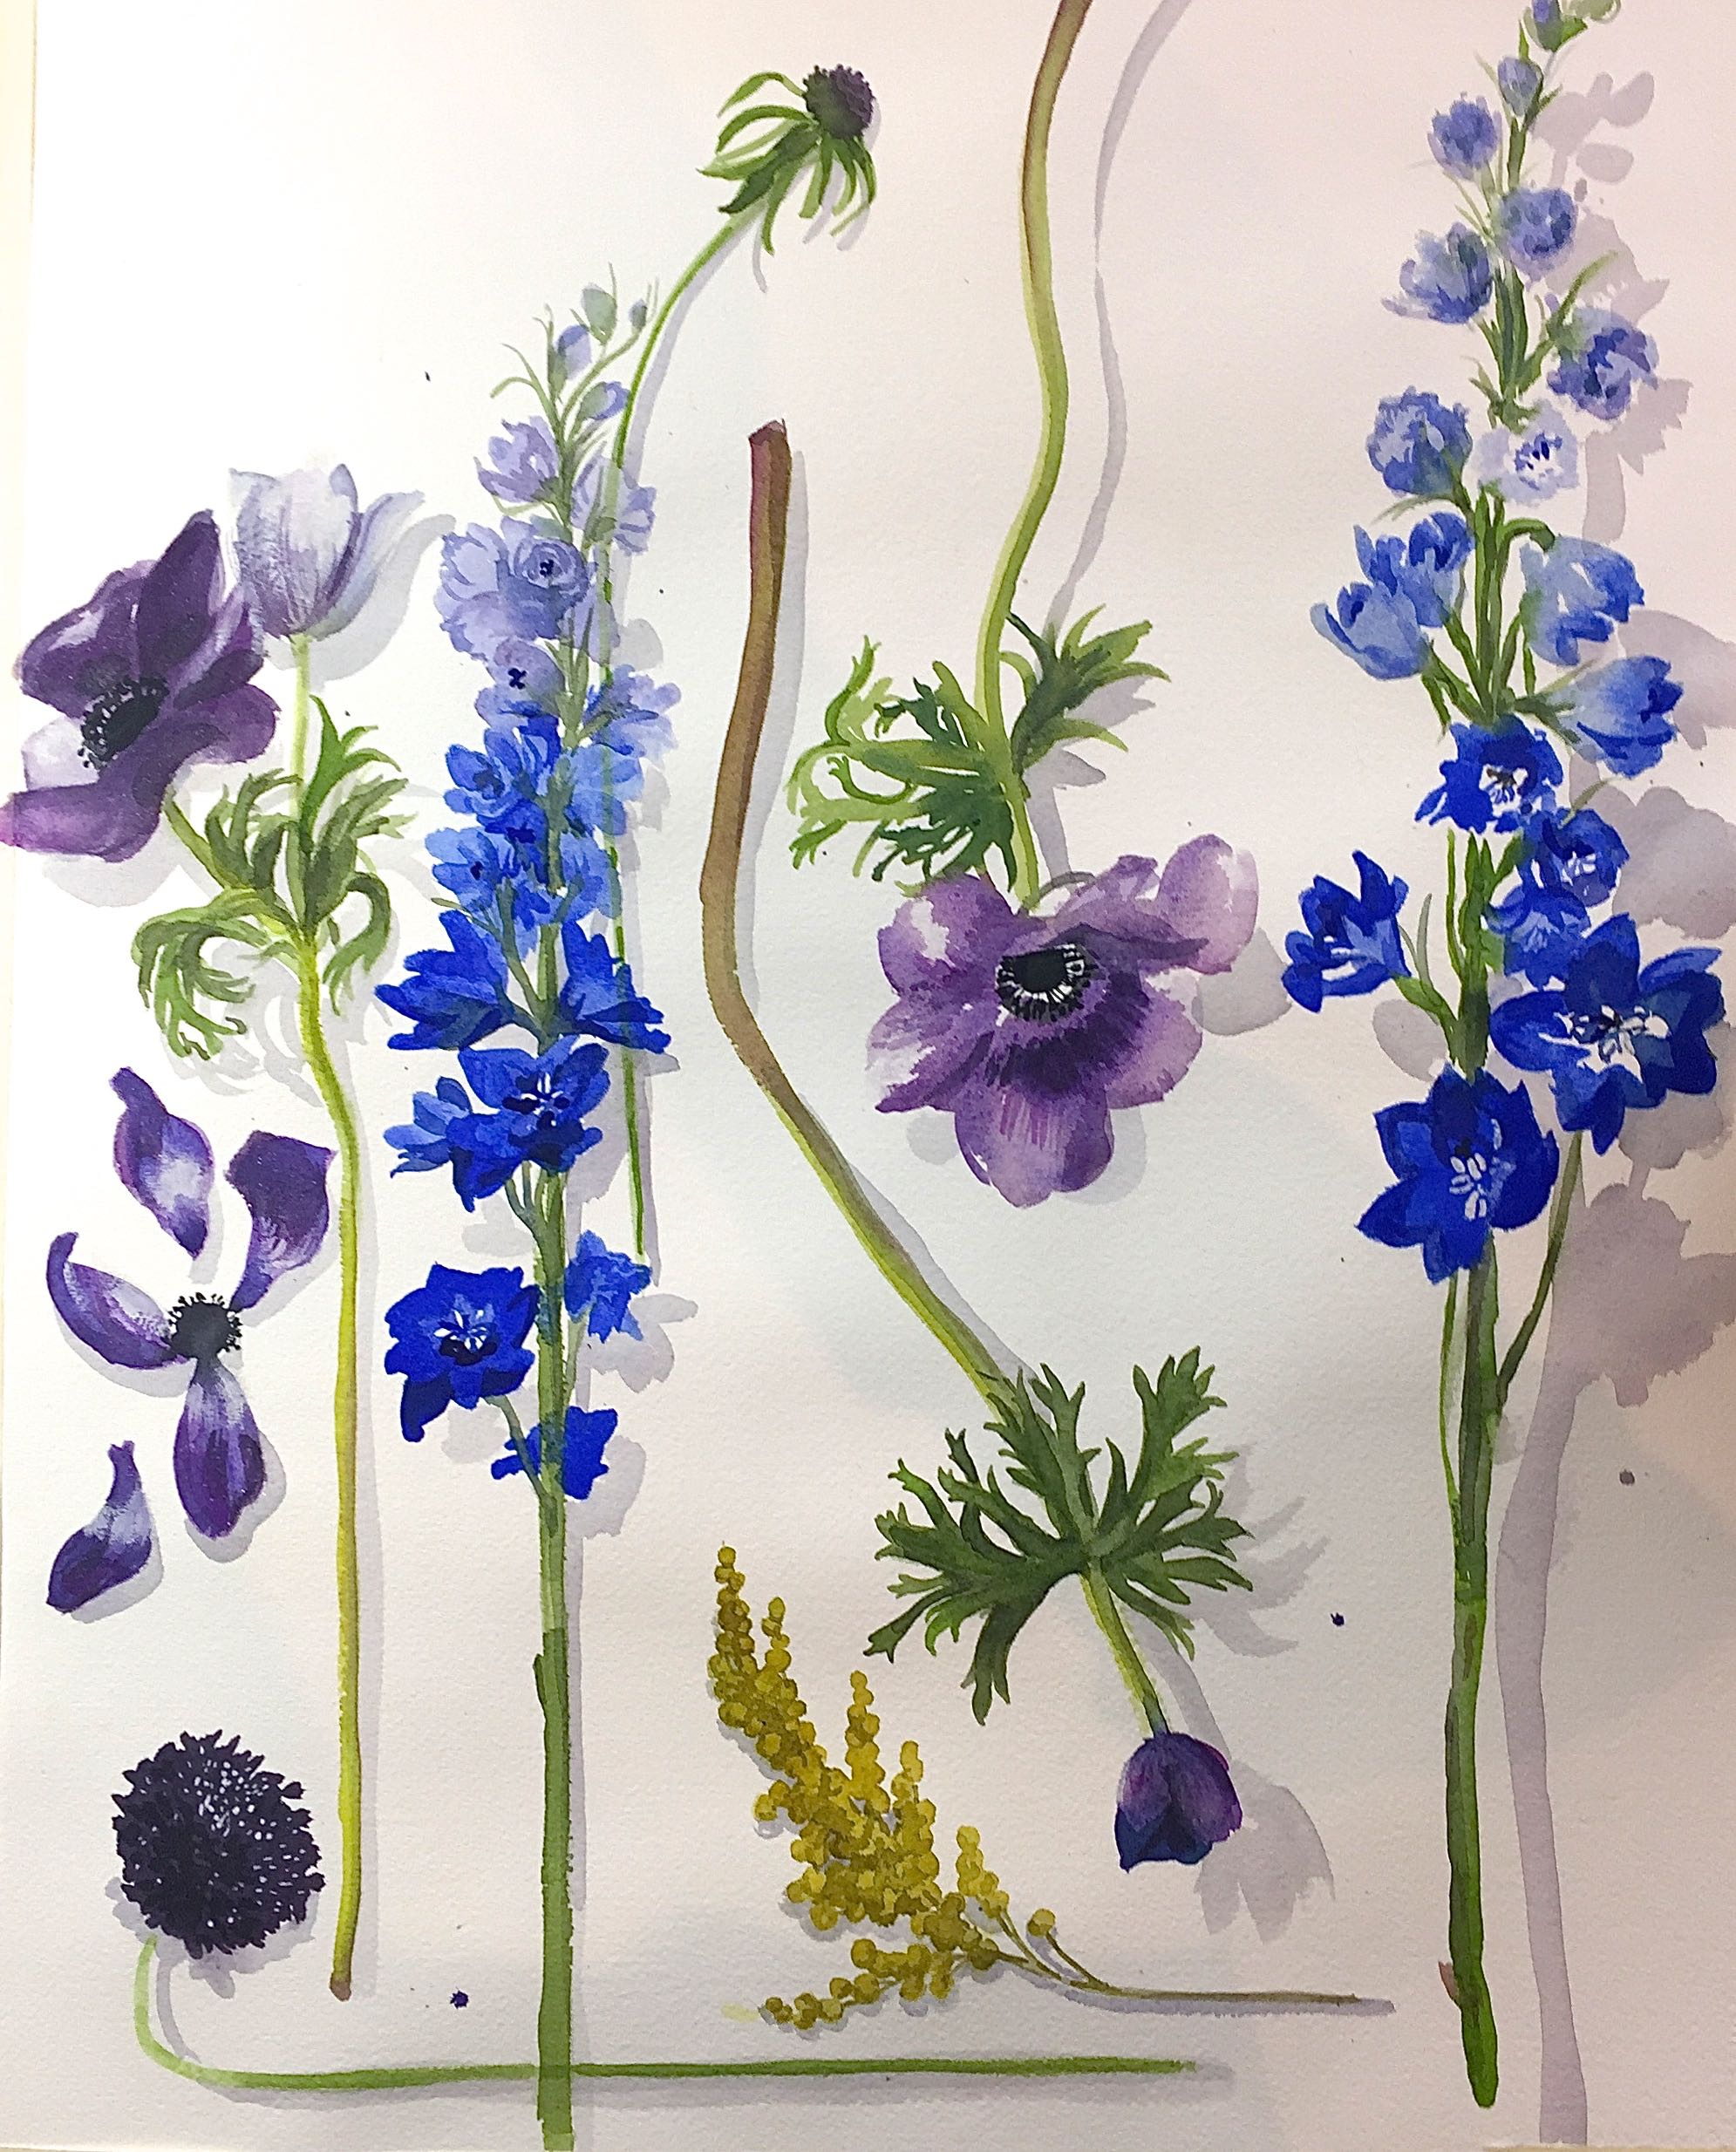 Study of Blue Flowers